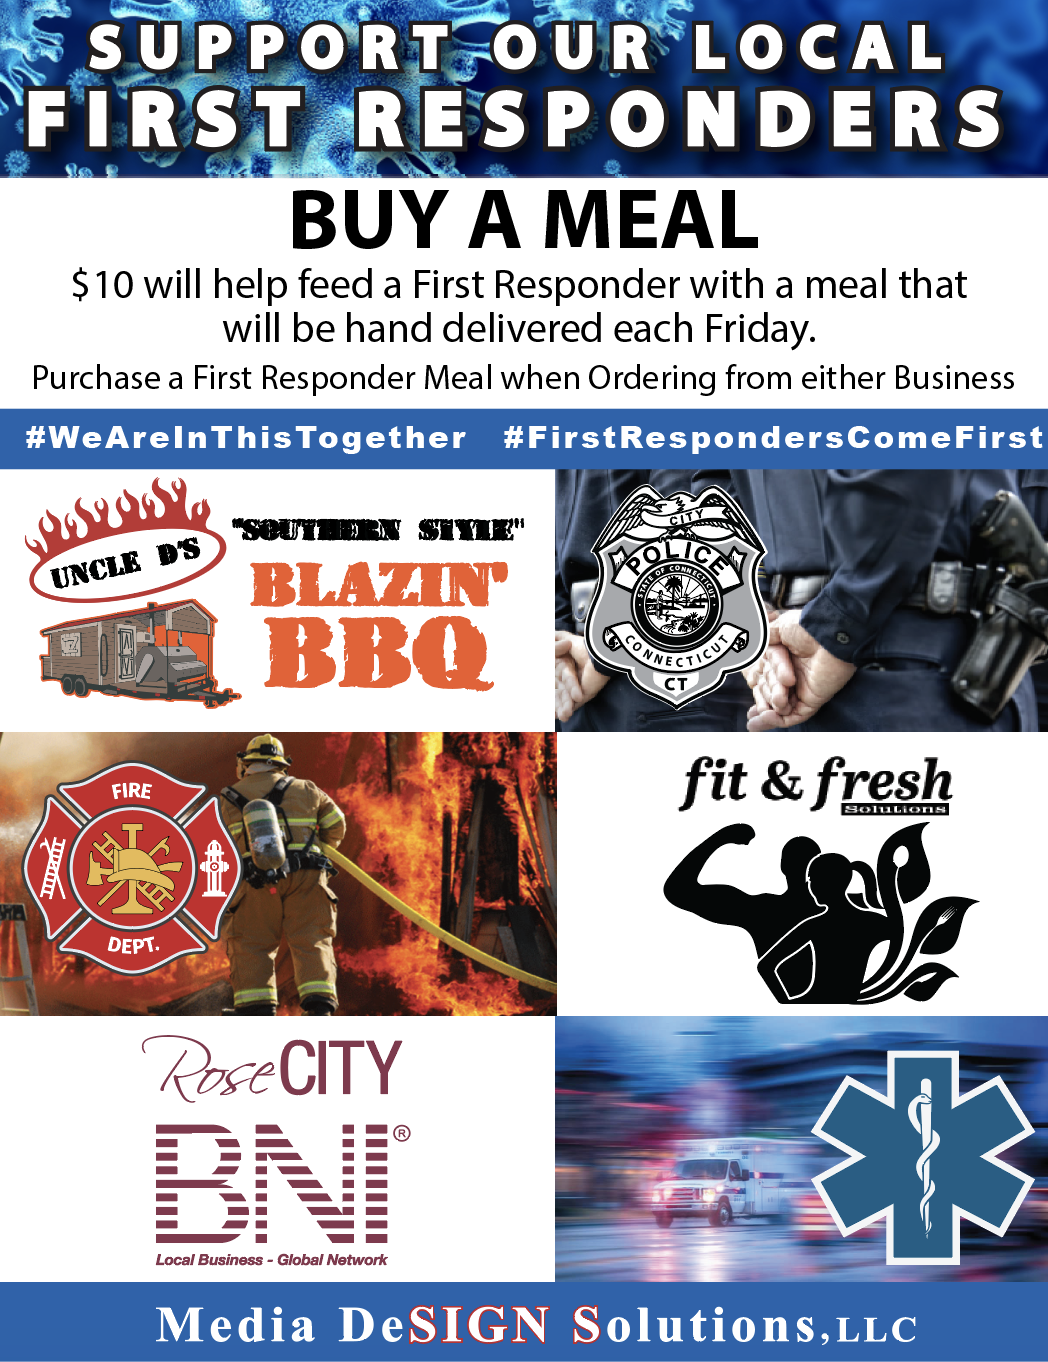 1st Responders Donate a Meal